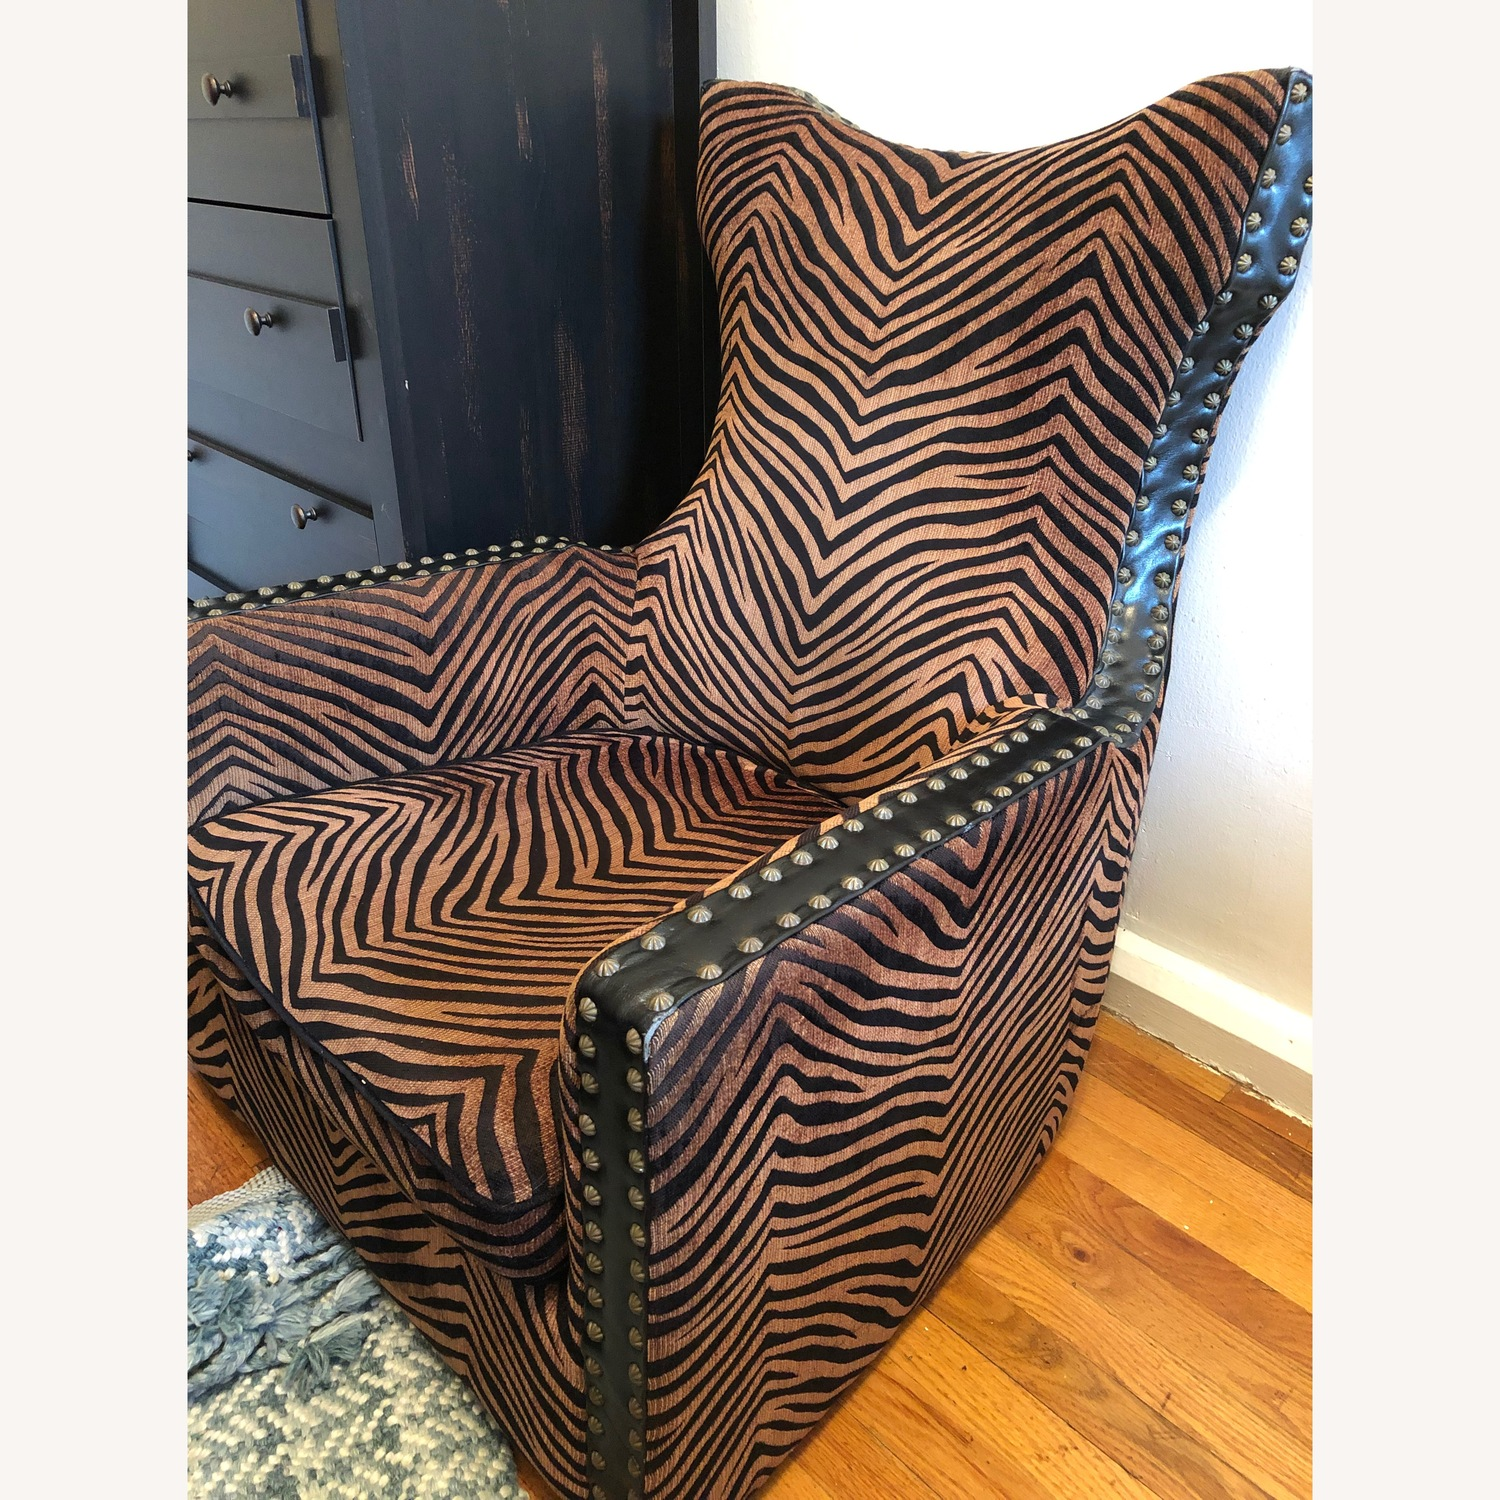 Uttermost Zebra Brow and Black Chair - image-3